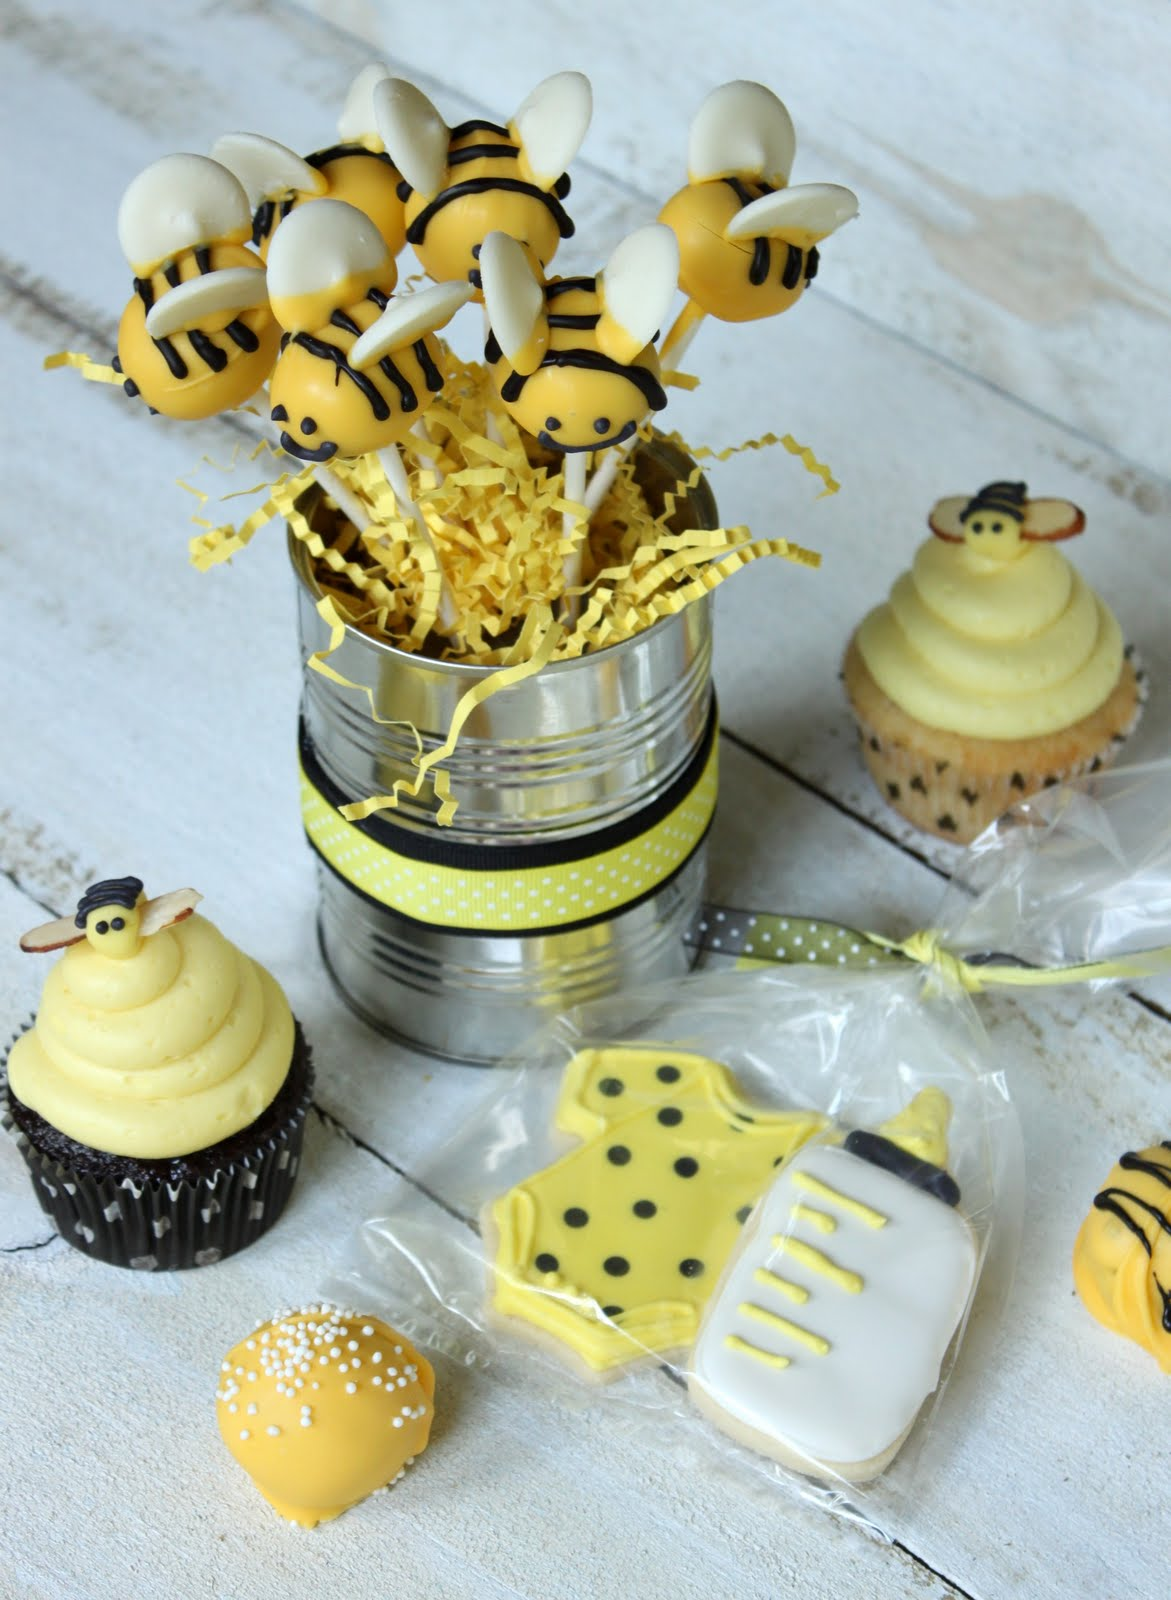 The Bee Cupcake Toppers Were Made From Yellow Fondant Rolled Into An Oval With Two Slivered Almonds Poked Sides Stripes And Eyes Piped On